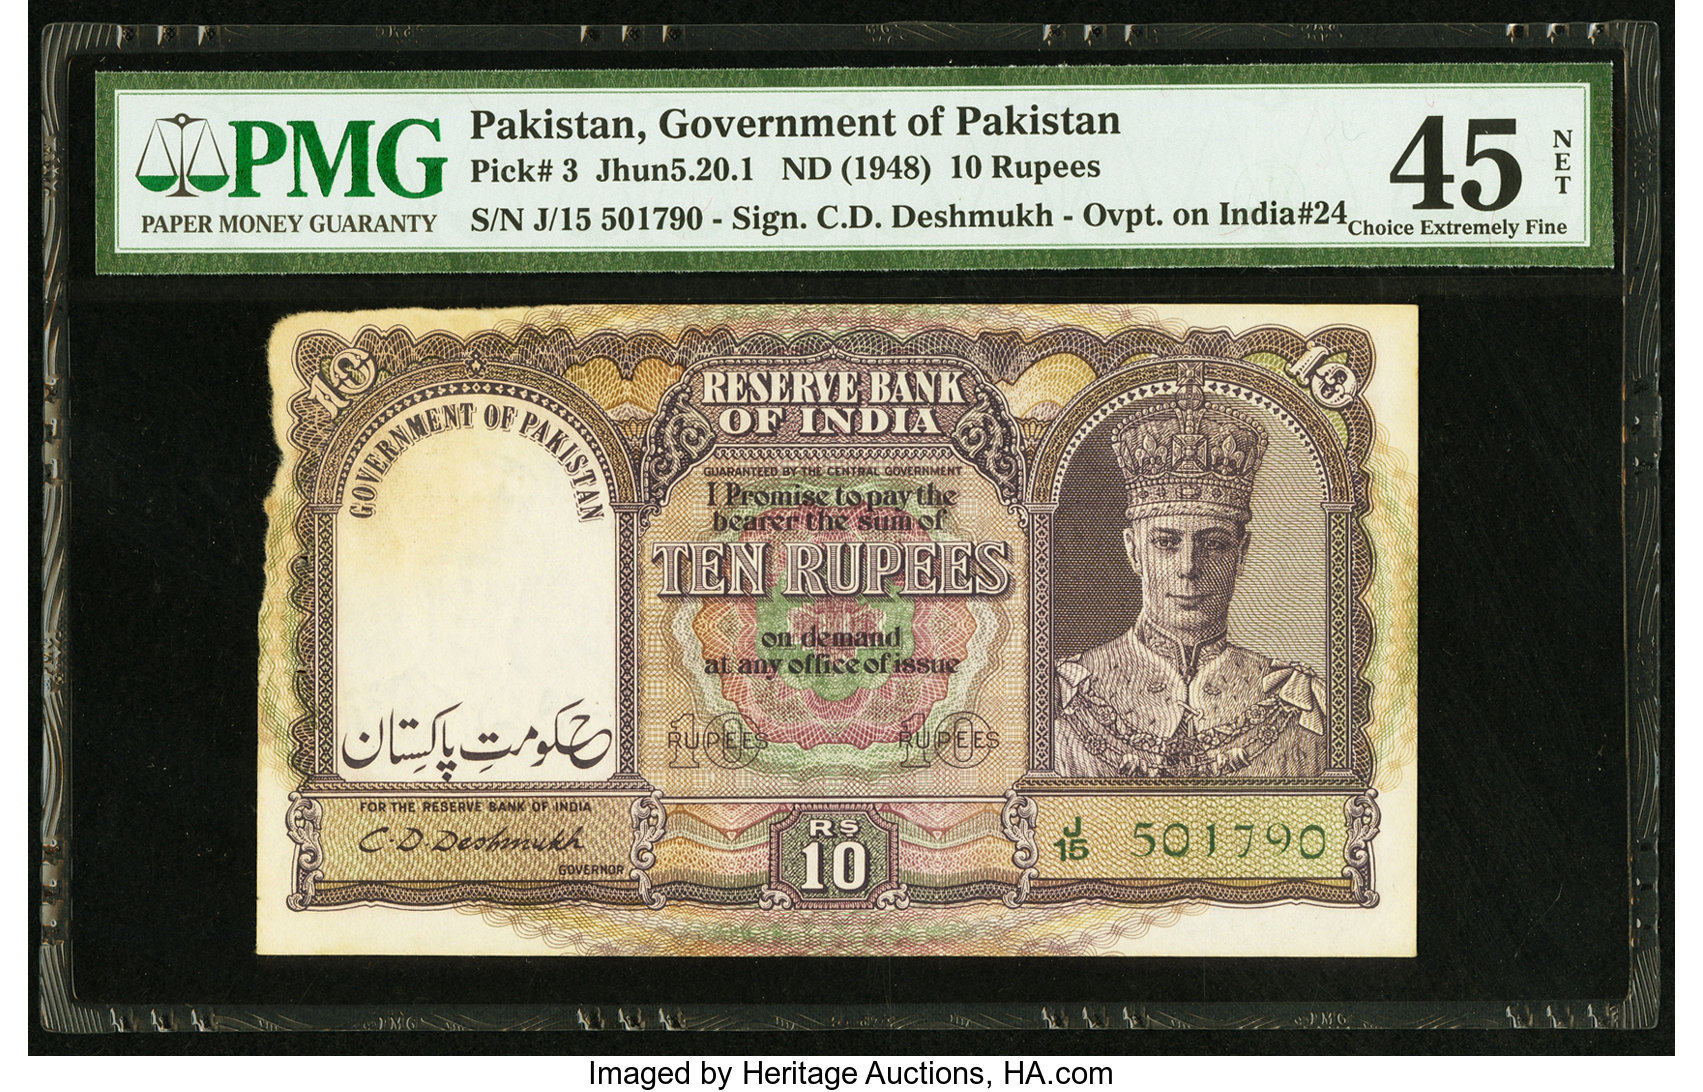 Pakistan Government of Pakistan 10 Rupees ND (1948) Pick 3